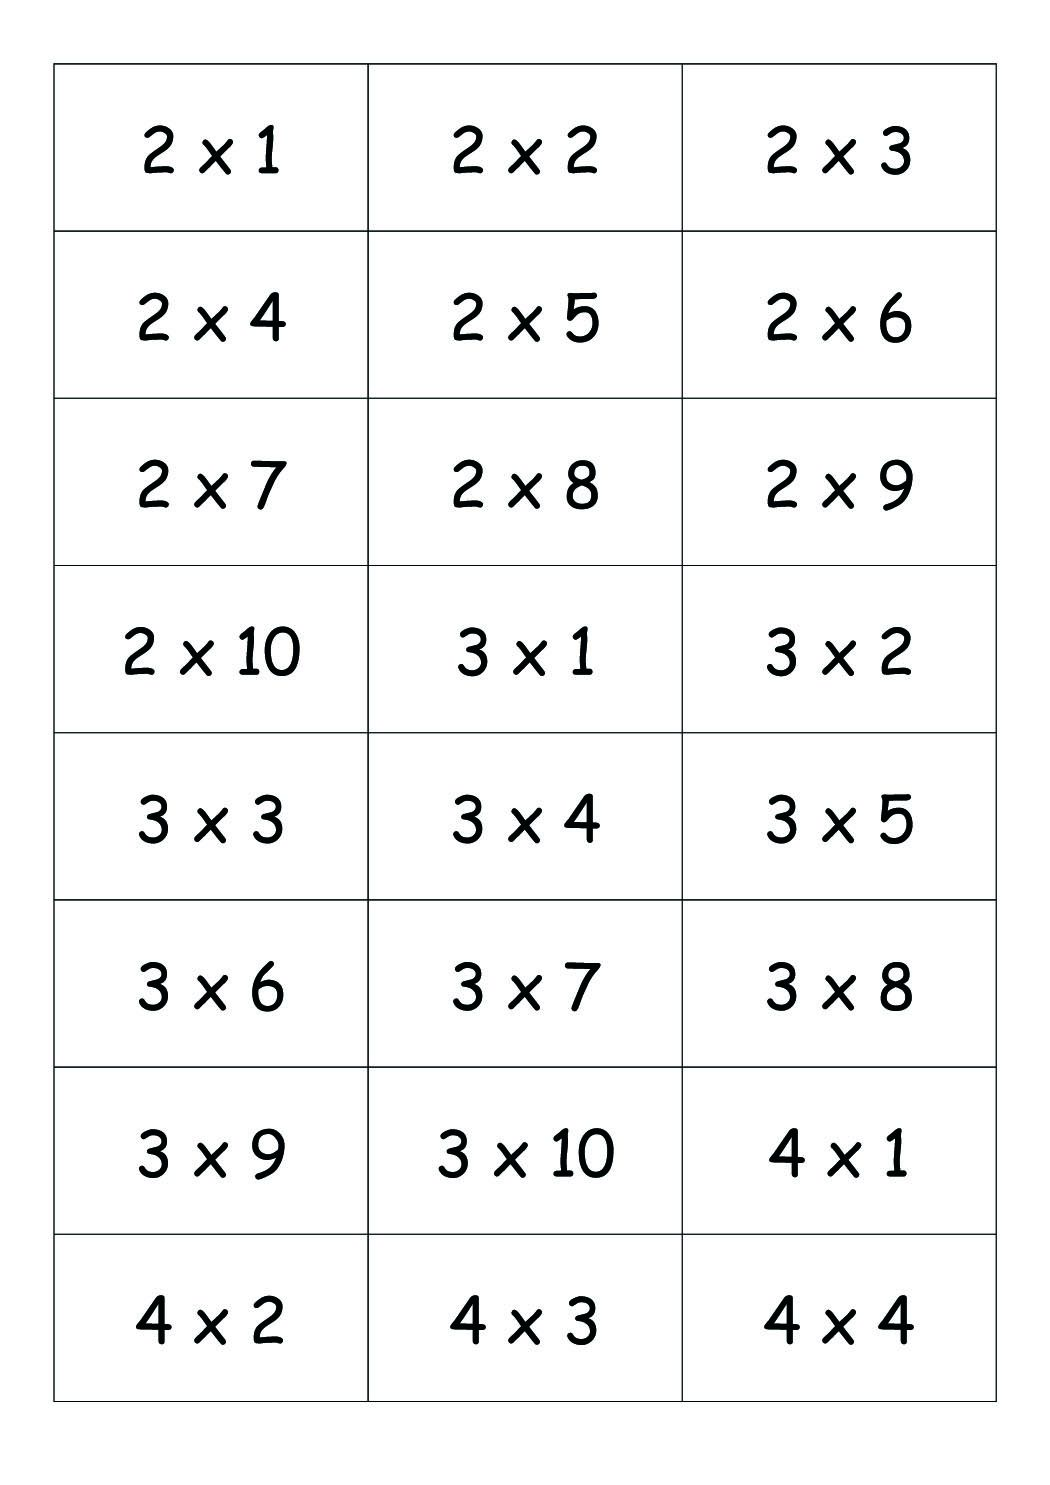 exercice table de multiplication 2 3 4 5 jeu de